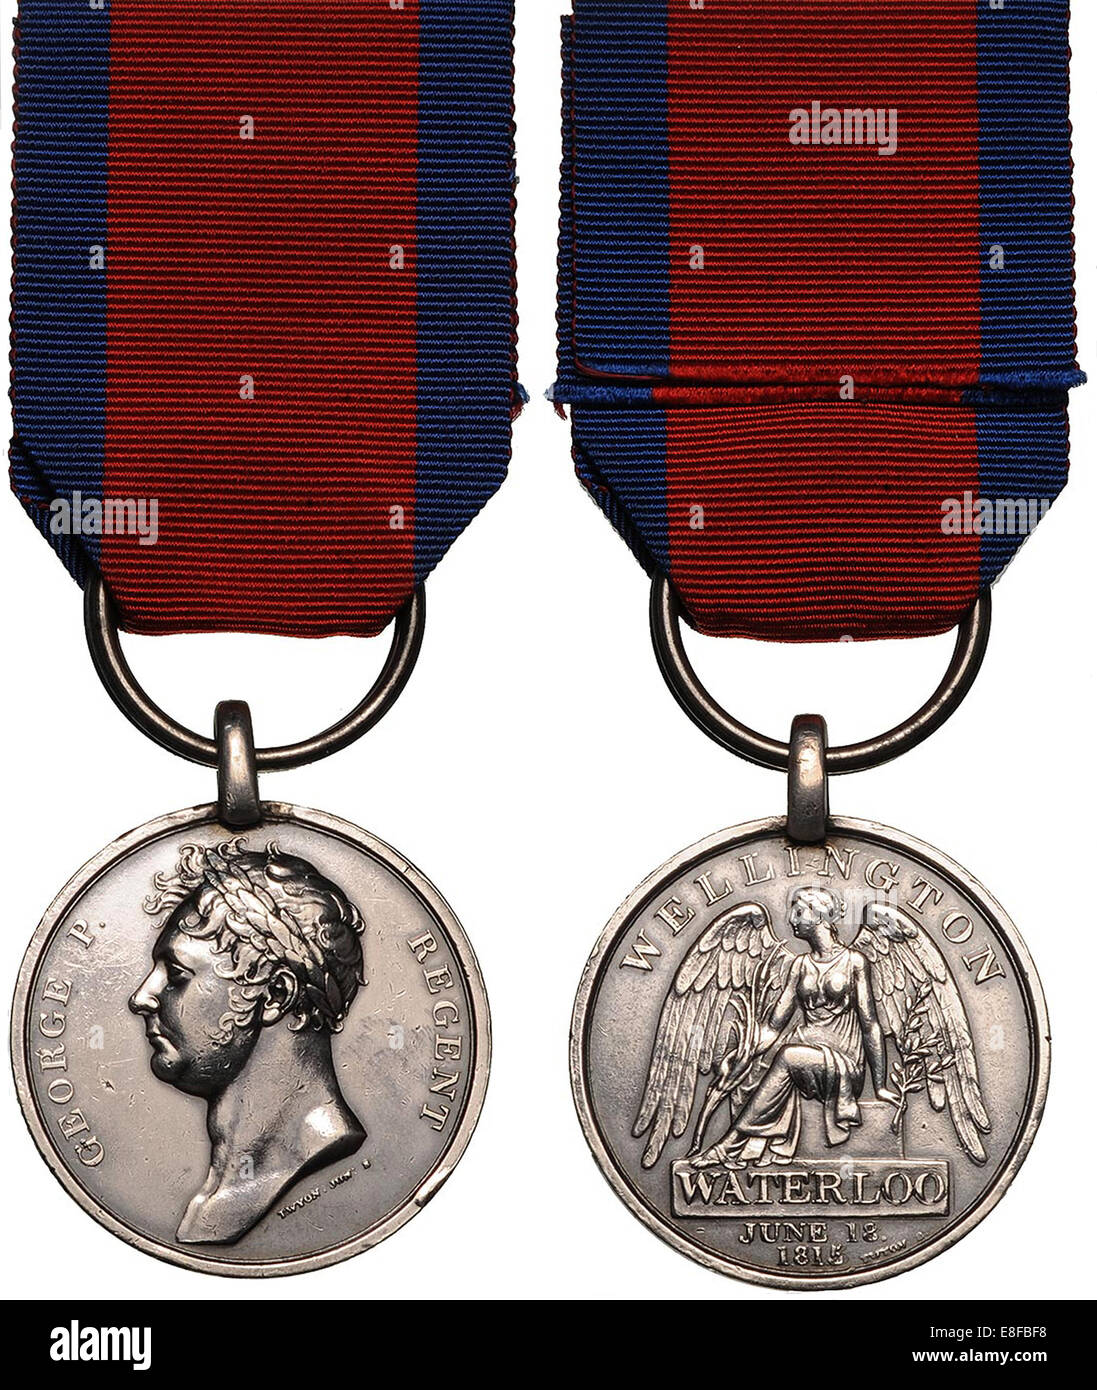 The Waterloo Medal. Artist: Orders, decorations and medals - Stock Image